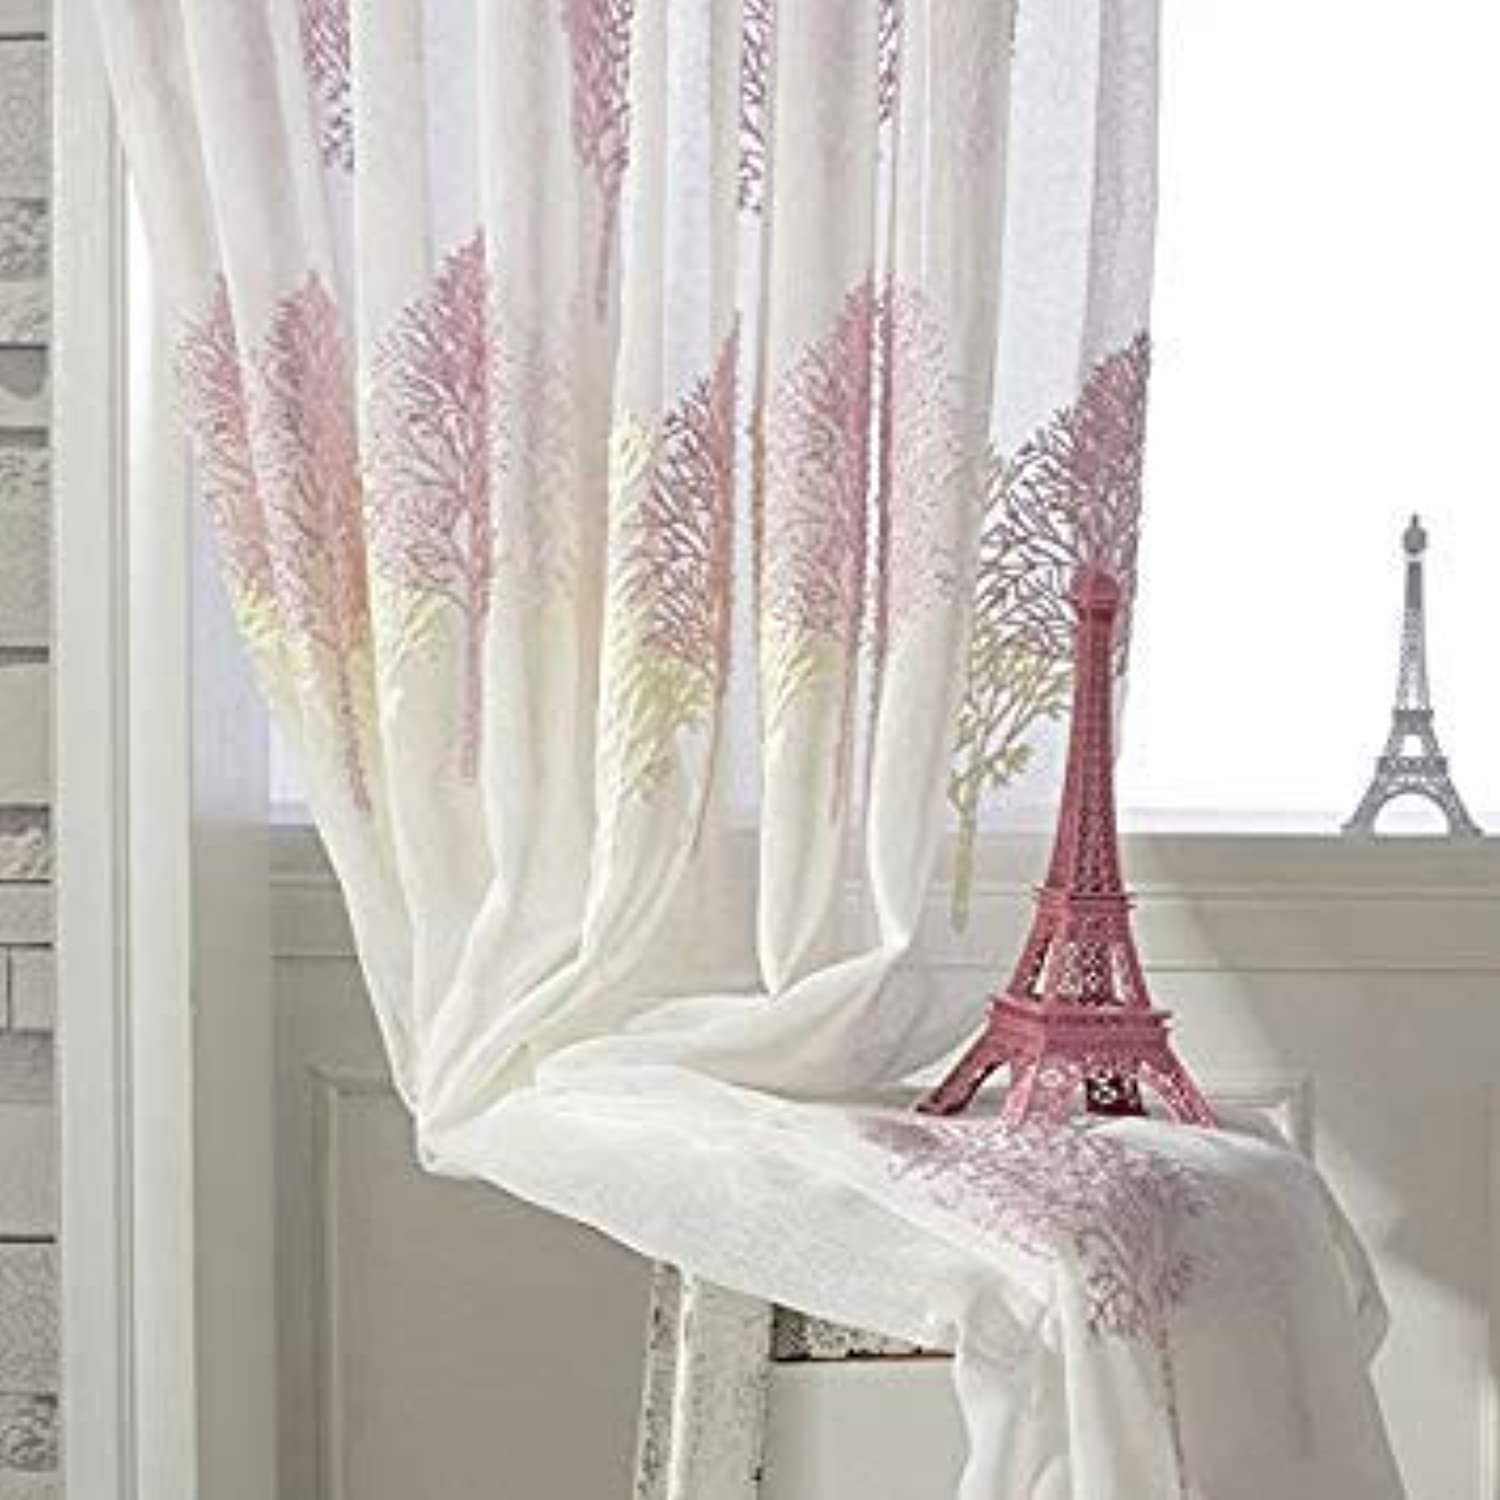 Double color Tree Embroidered Tulle Curtains Sheer Curtain Embroidery Window Volie Cortinas Rideau Voilage Gordijnen CL-123(Processing  Hook,Size  W100xH270 cm)